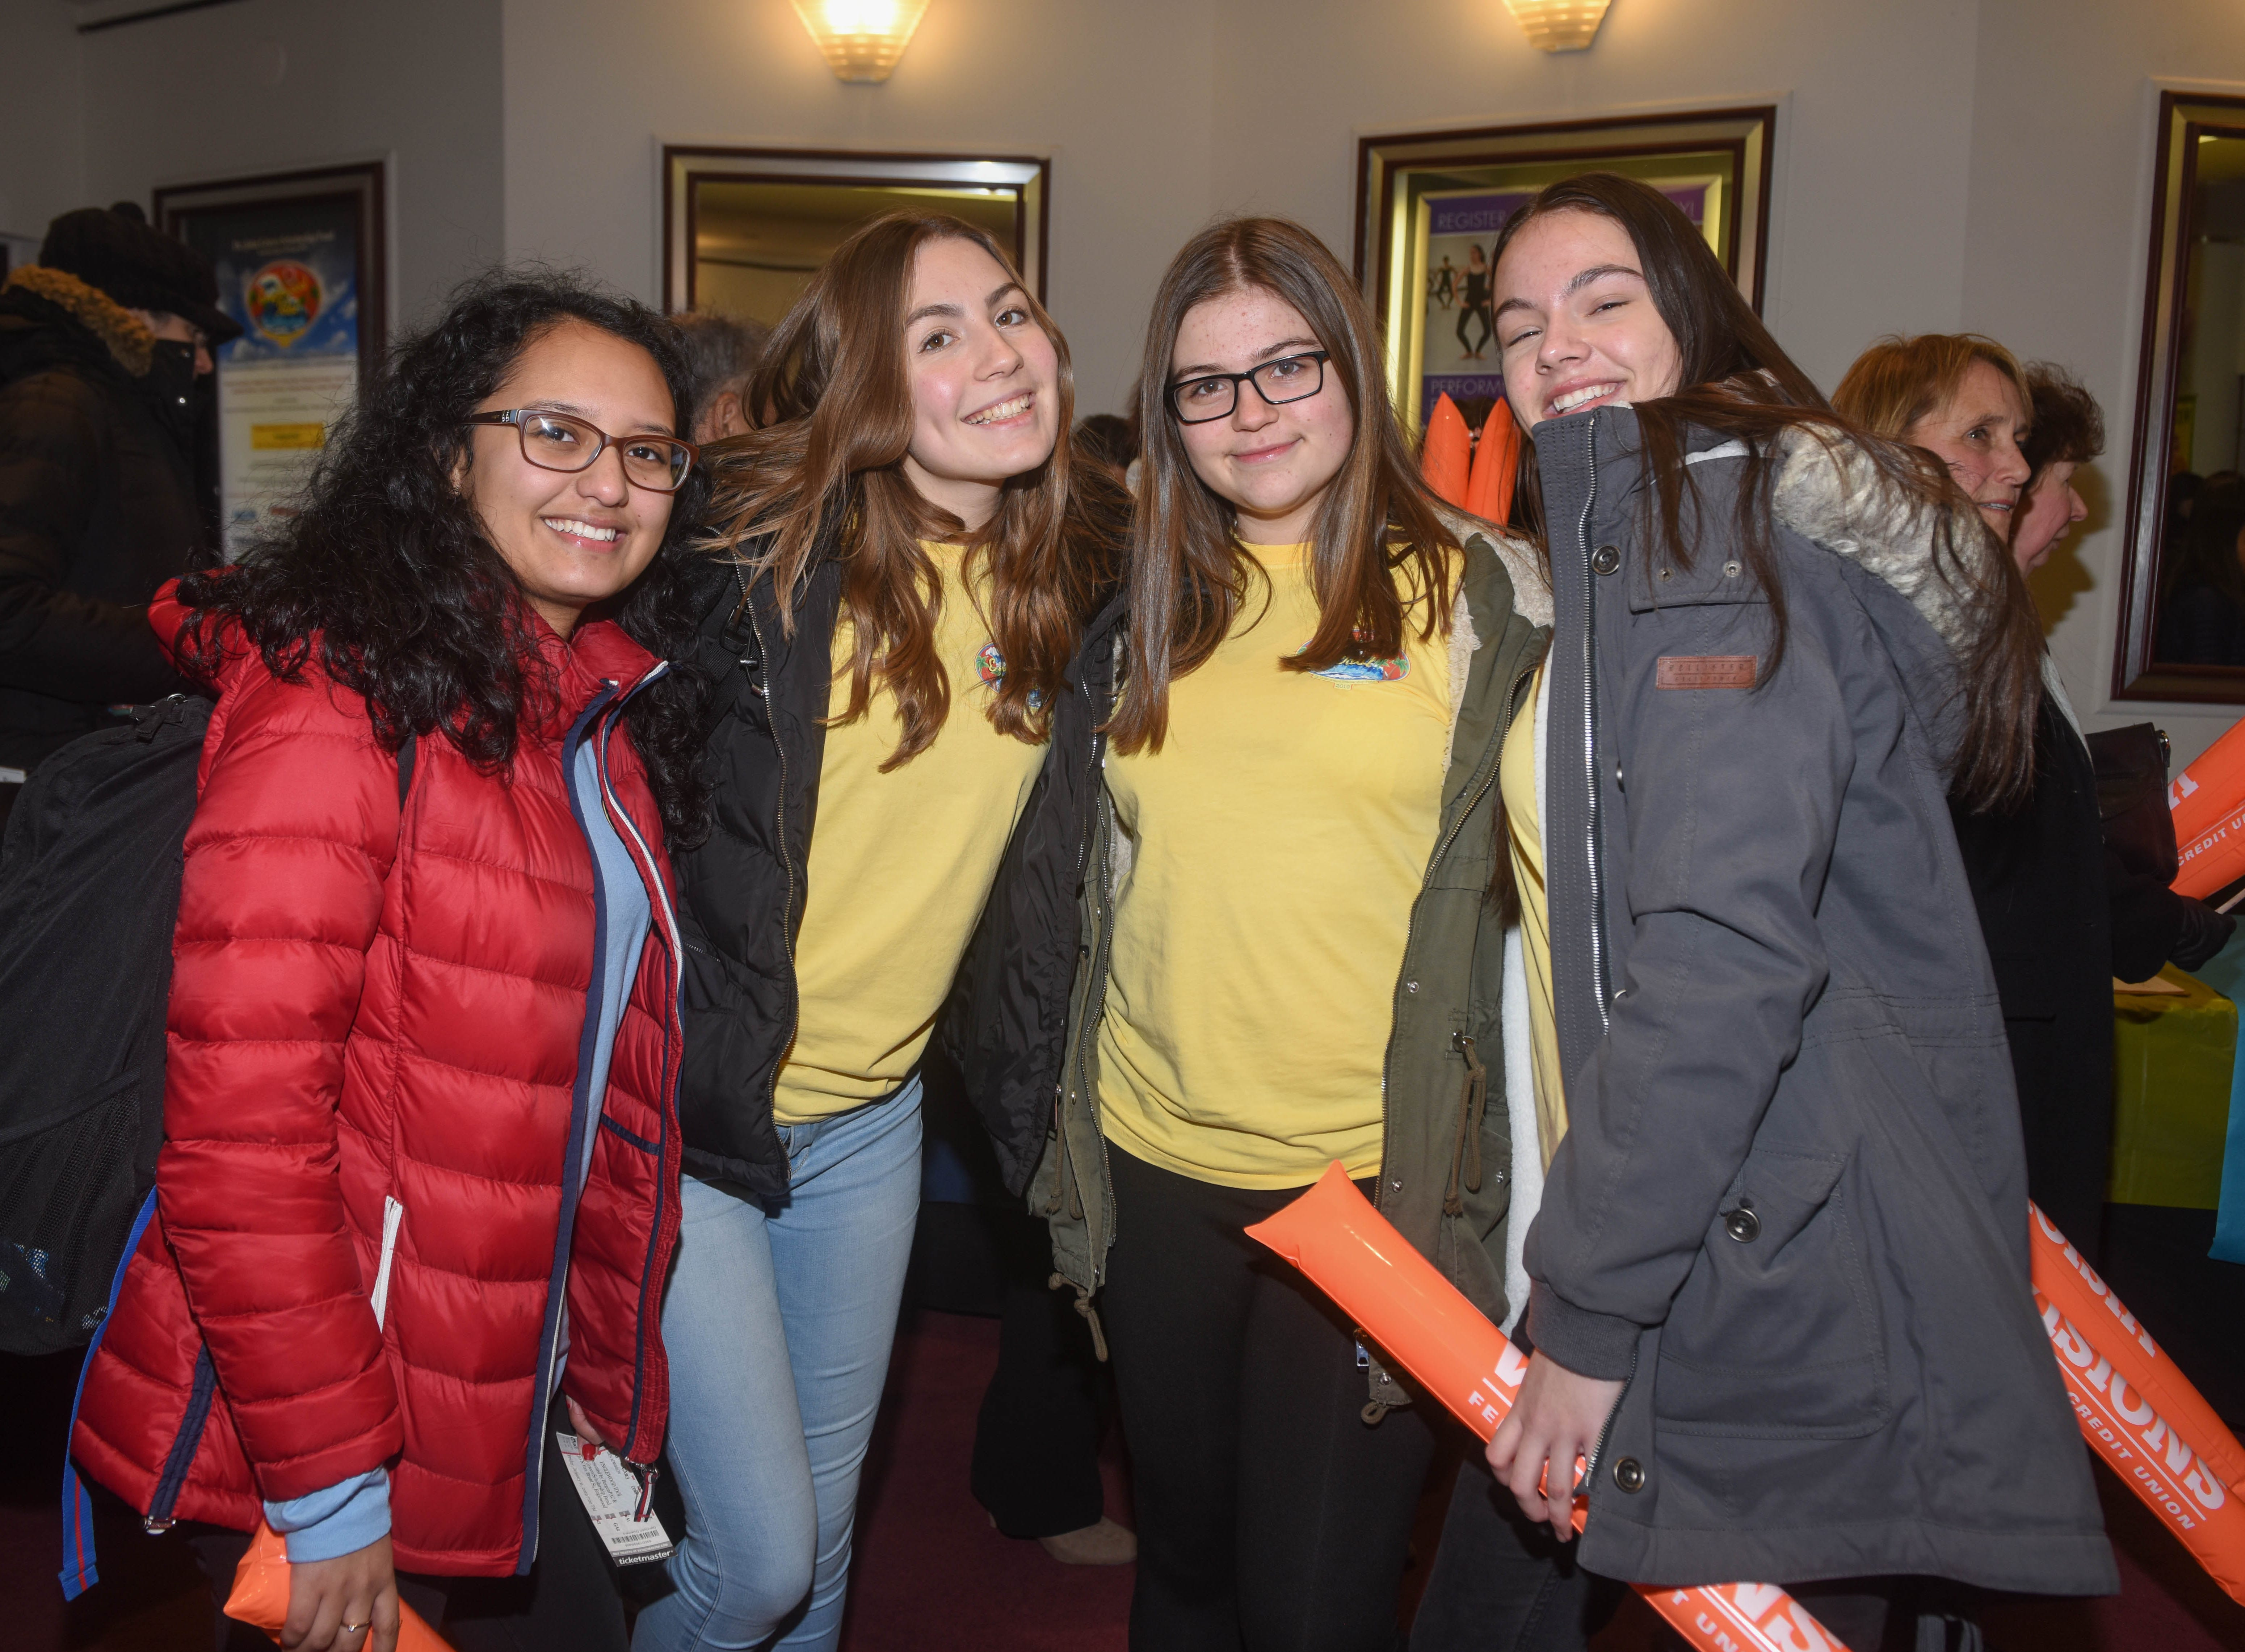 Daniella Mazzoni, Diana Idrizi, Anna Kasprzak and Wiktoria Gawelko. The 2019 Englewood Idol was held at bergenPAC theater. The singing competition is open to any high school student who currently lives or goes to school in Englewood, NJ. This years winner was Genesis Capellan. 01/11/2019